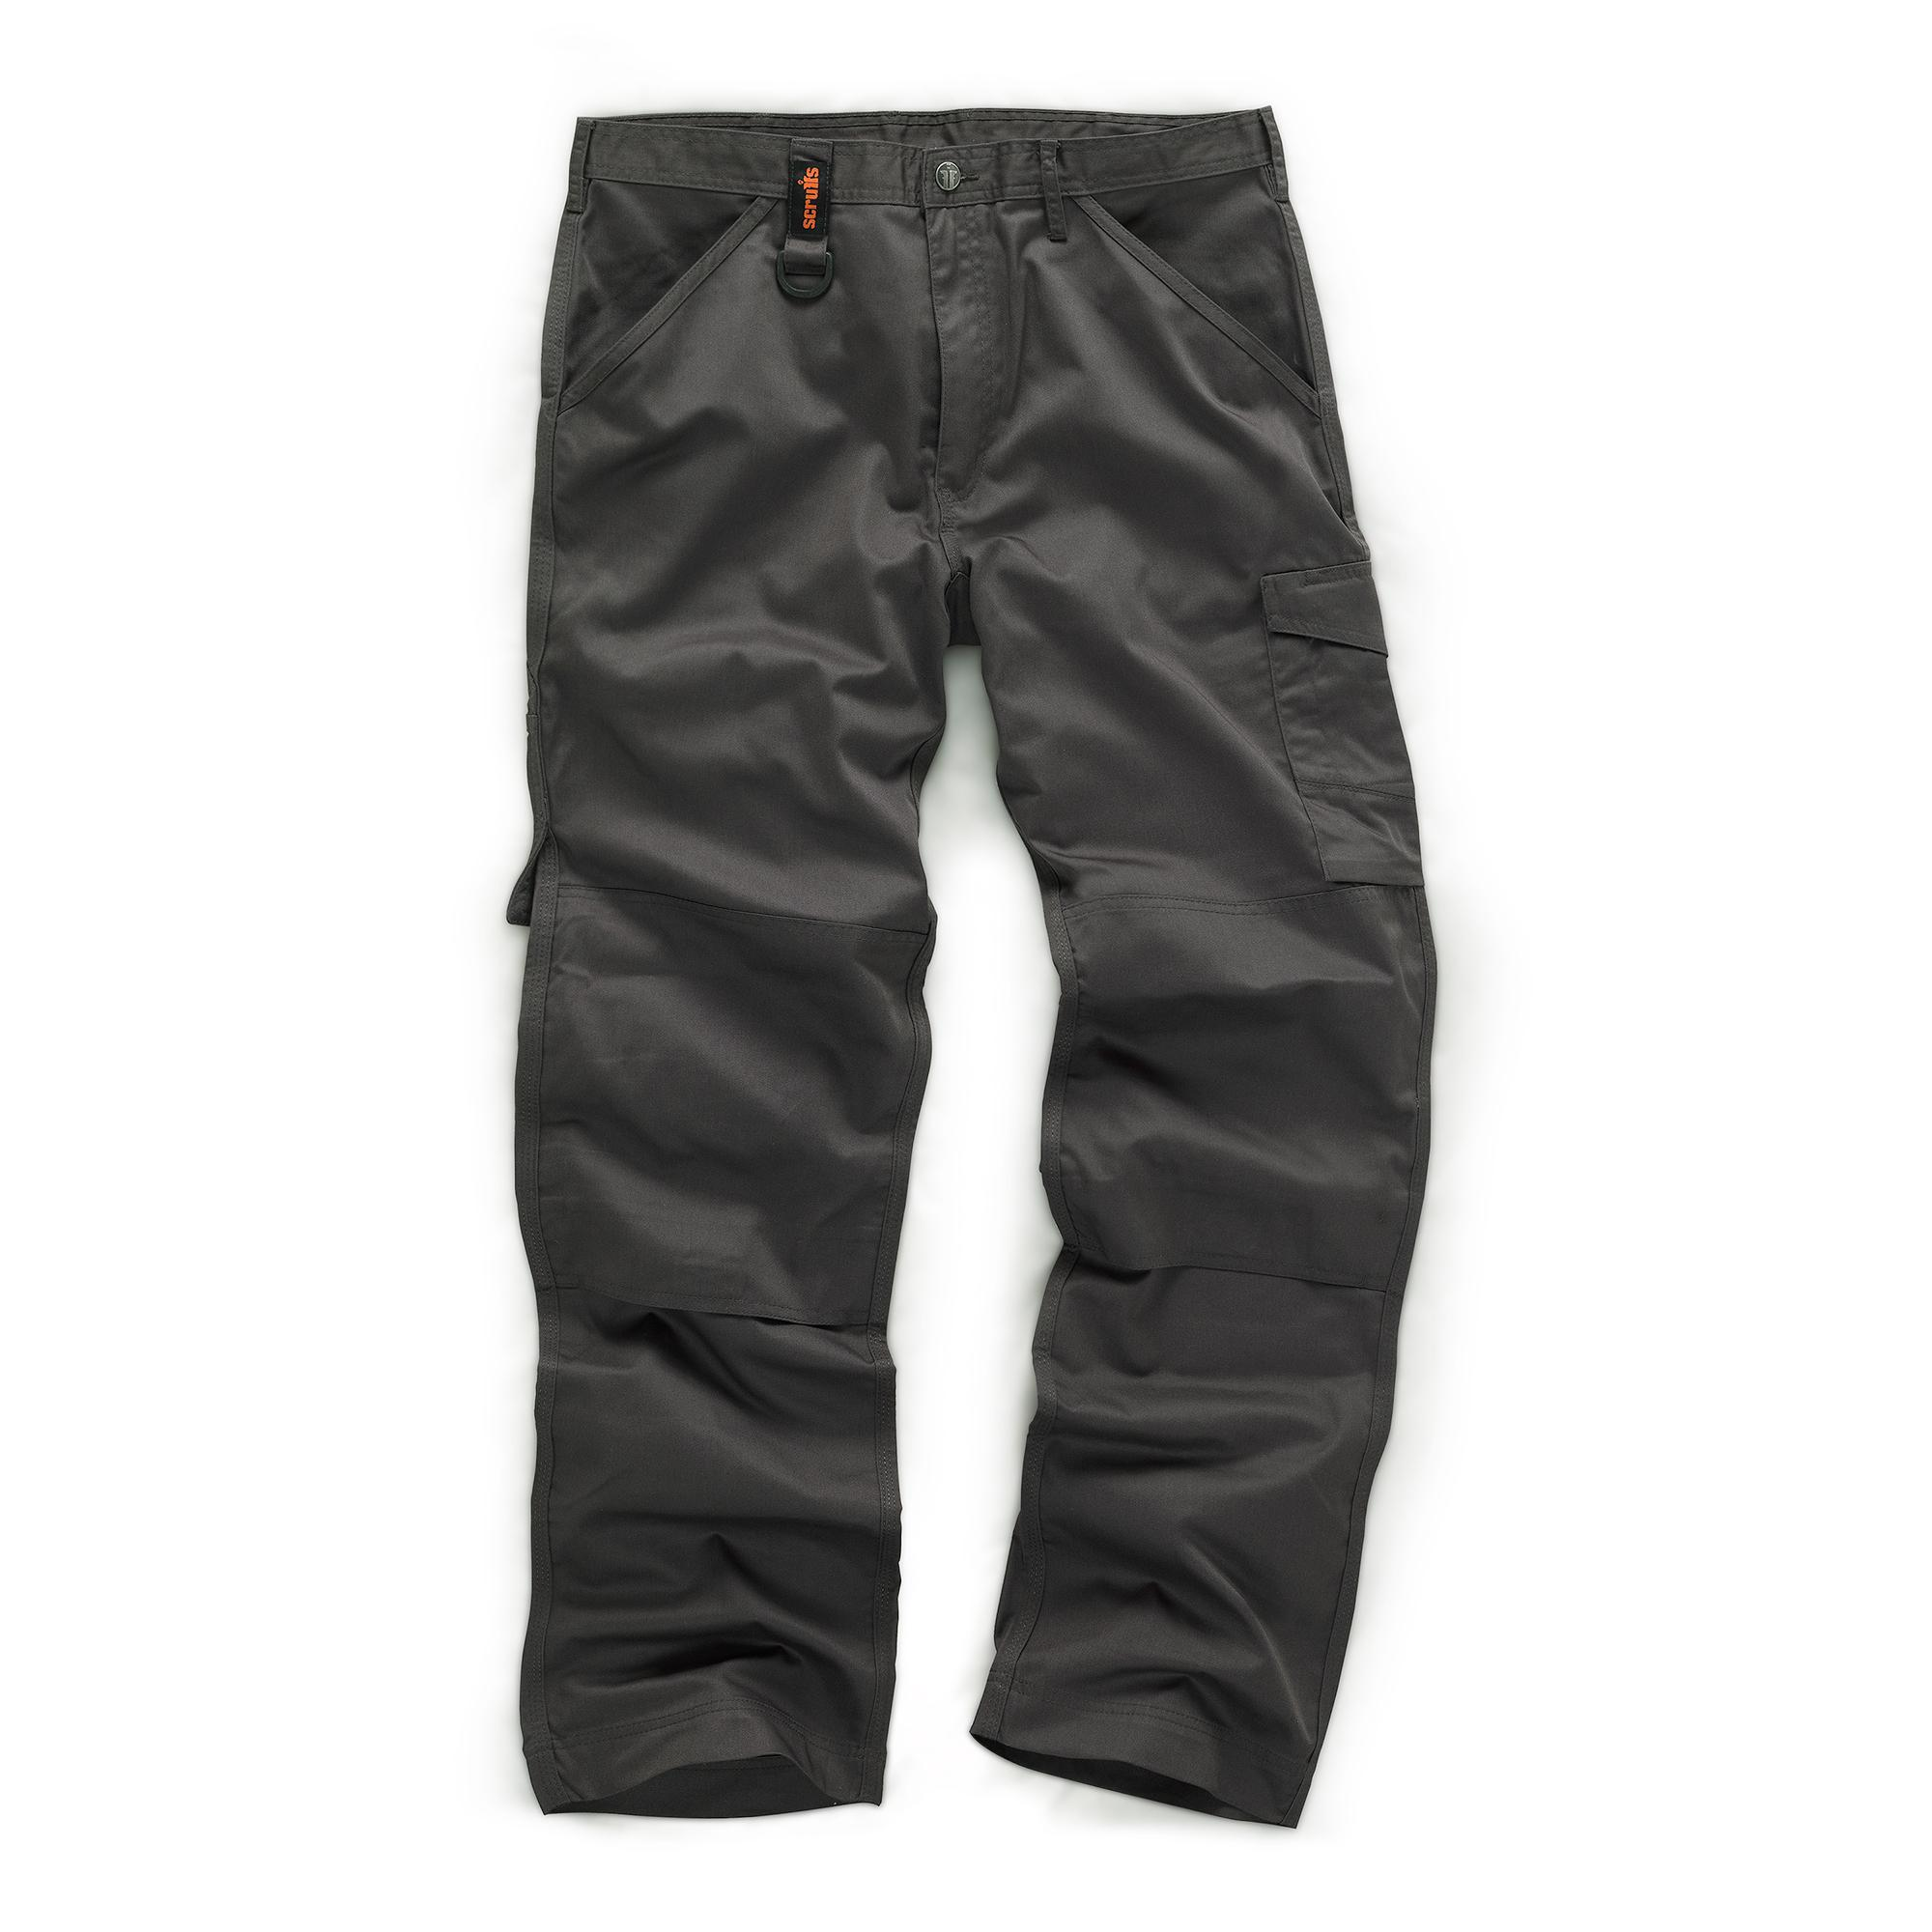 Worker Trousers Graphite 30L